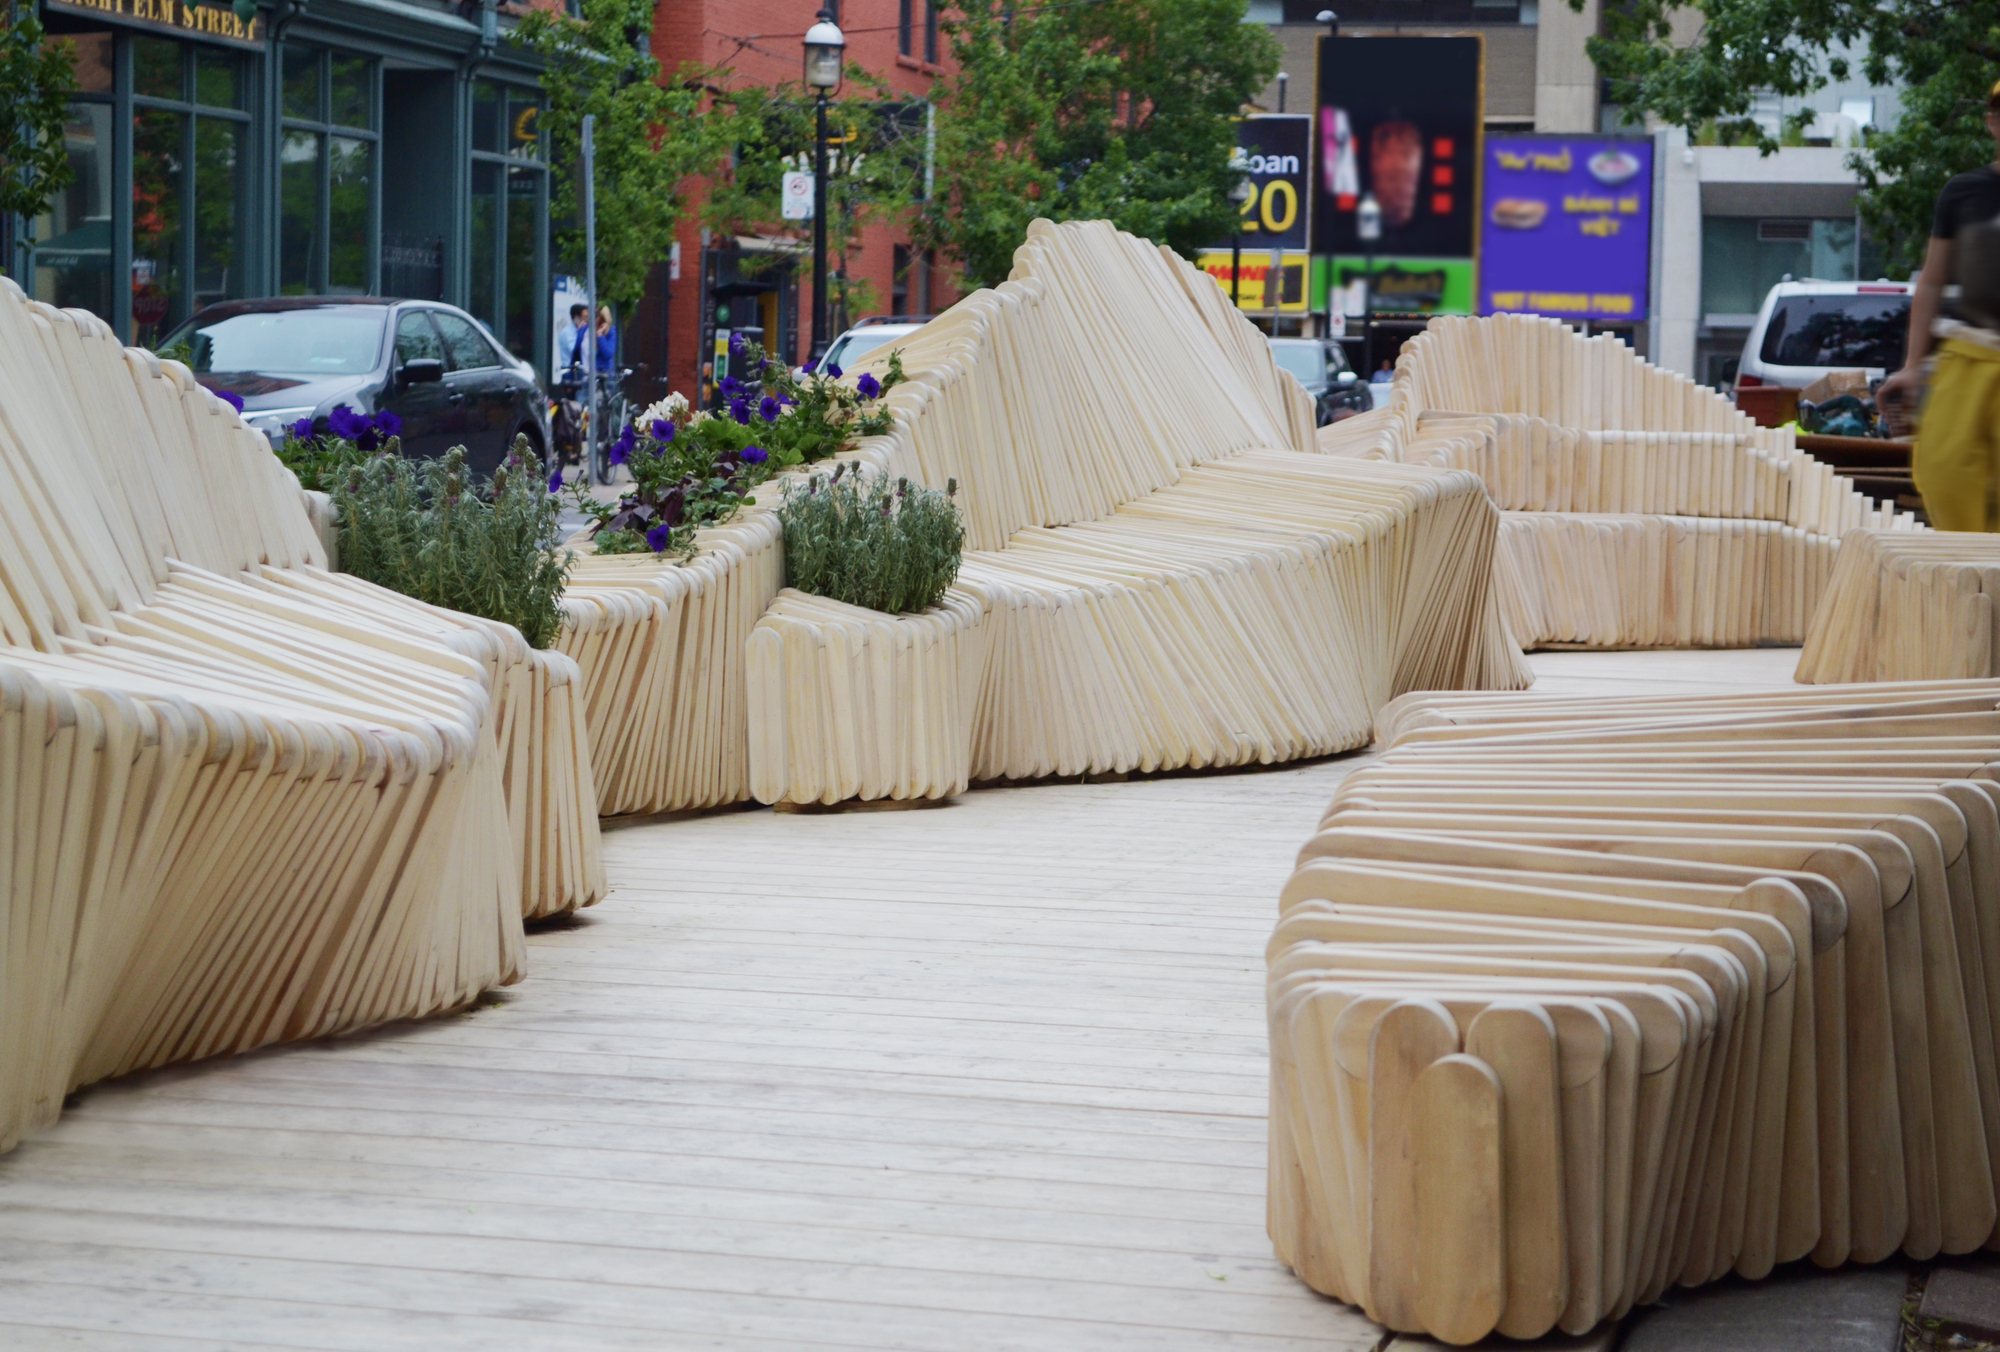 A Modular Wooden Bench Forms The Backbone Of This Awesome